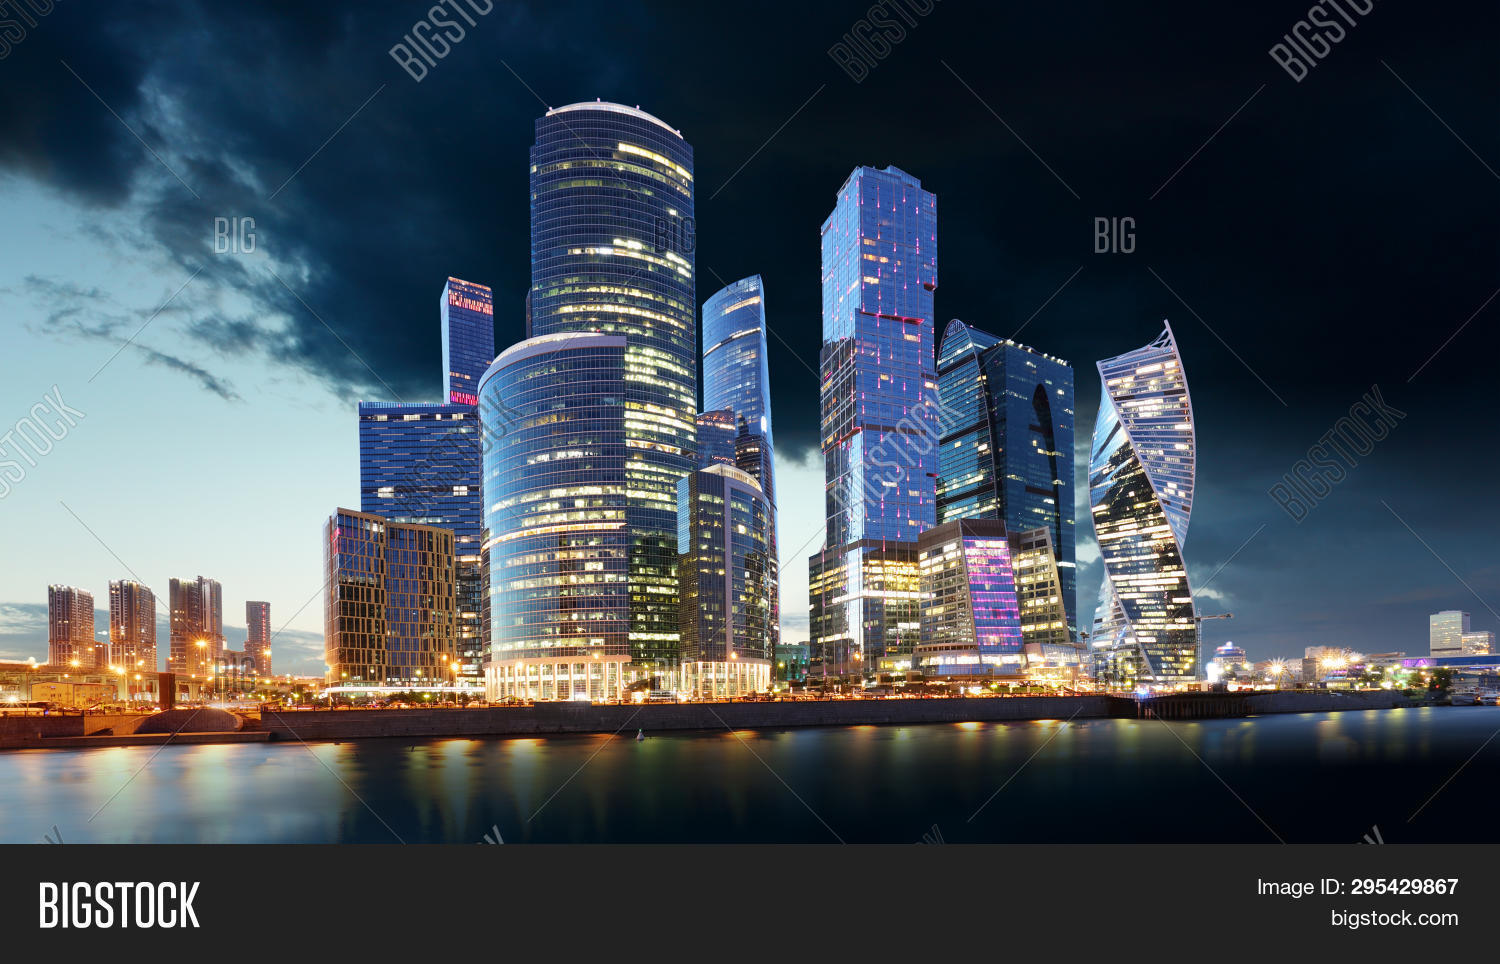 Moscow City Skyline Image Photo Free Trial Bigstock